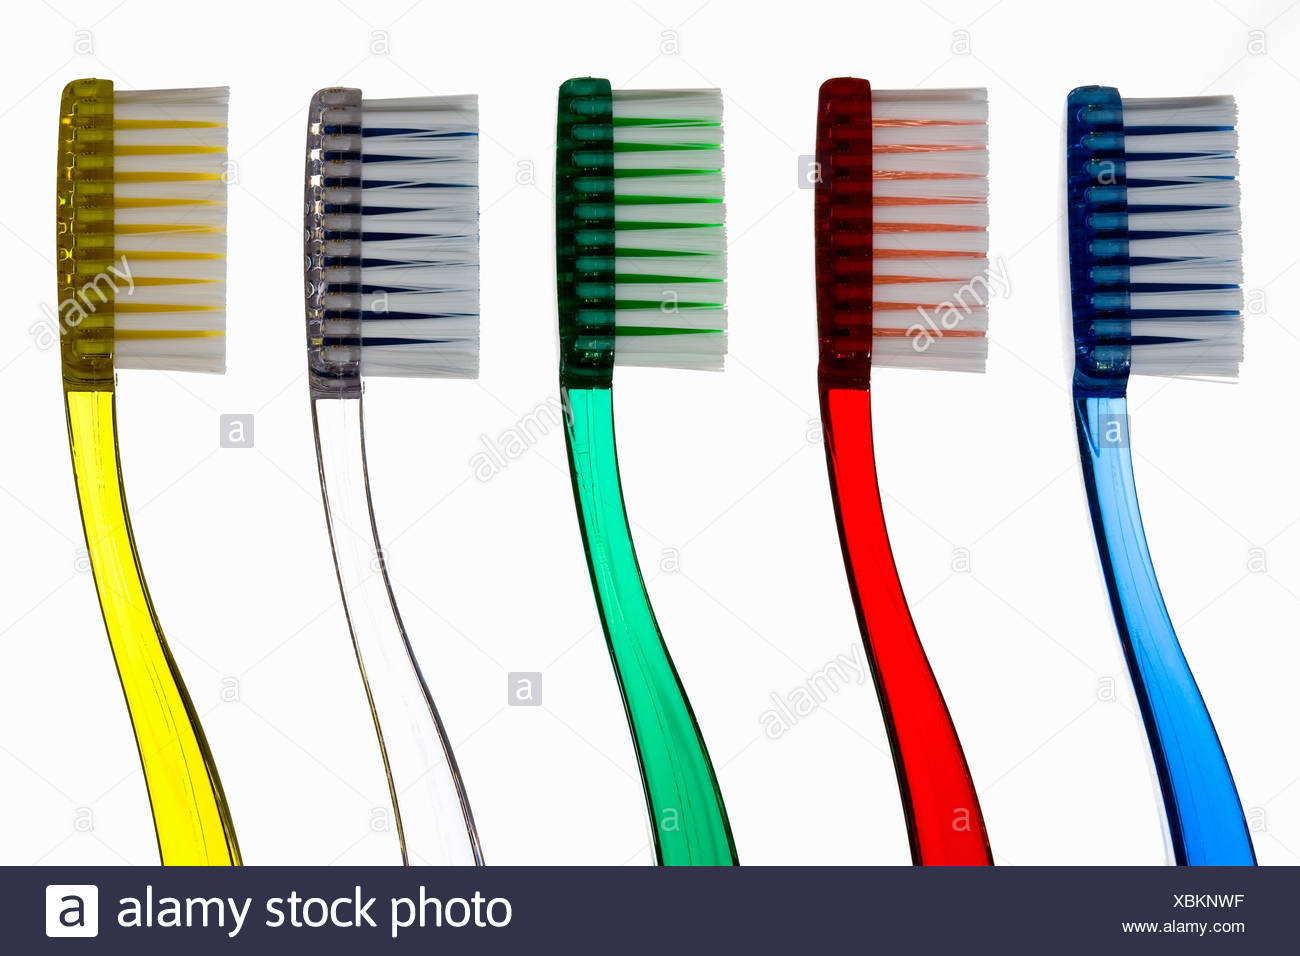 Toothbrushes in a row - Stock Image